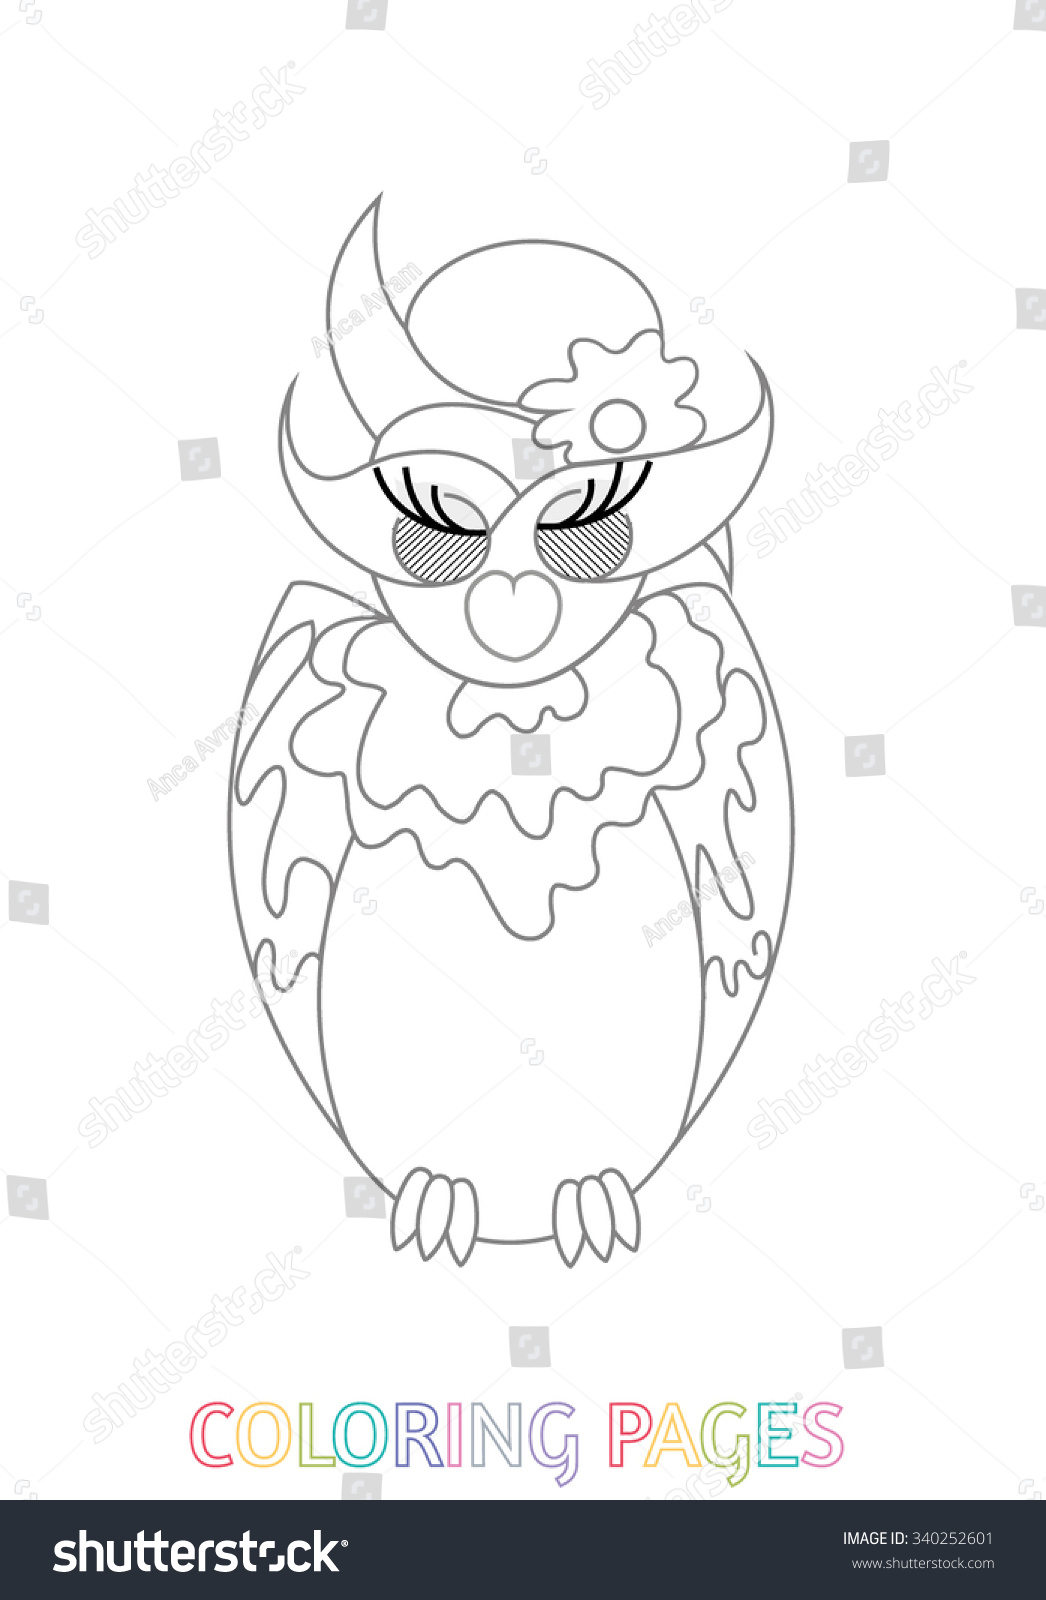 Adult Kids Coloring Pages Owls Stock Vector 340252601 - Shutterstock